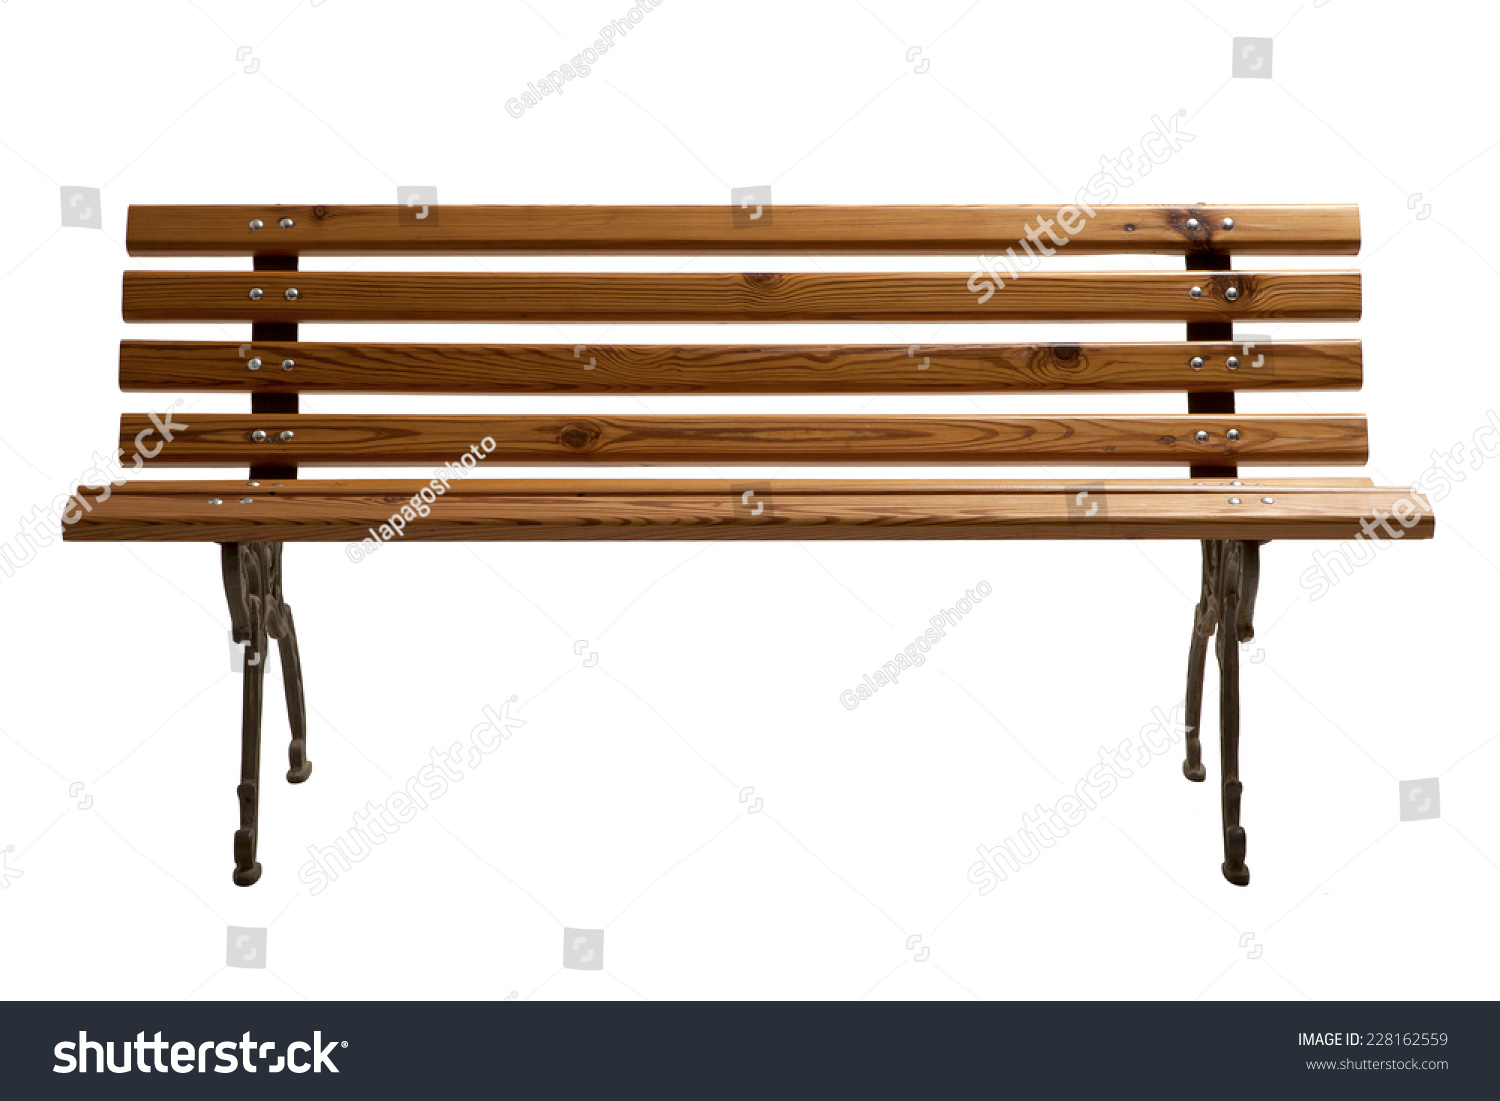 Wooden Park Benches Front Wooden Park Bench Isolated On White Background Stock Photo